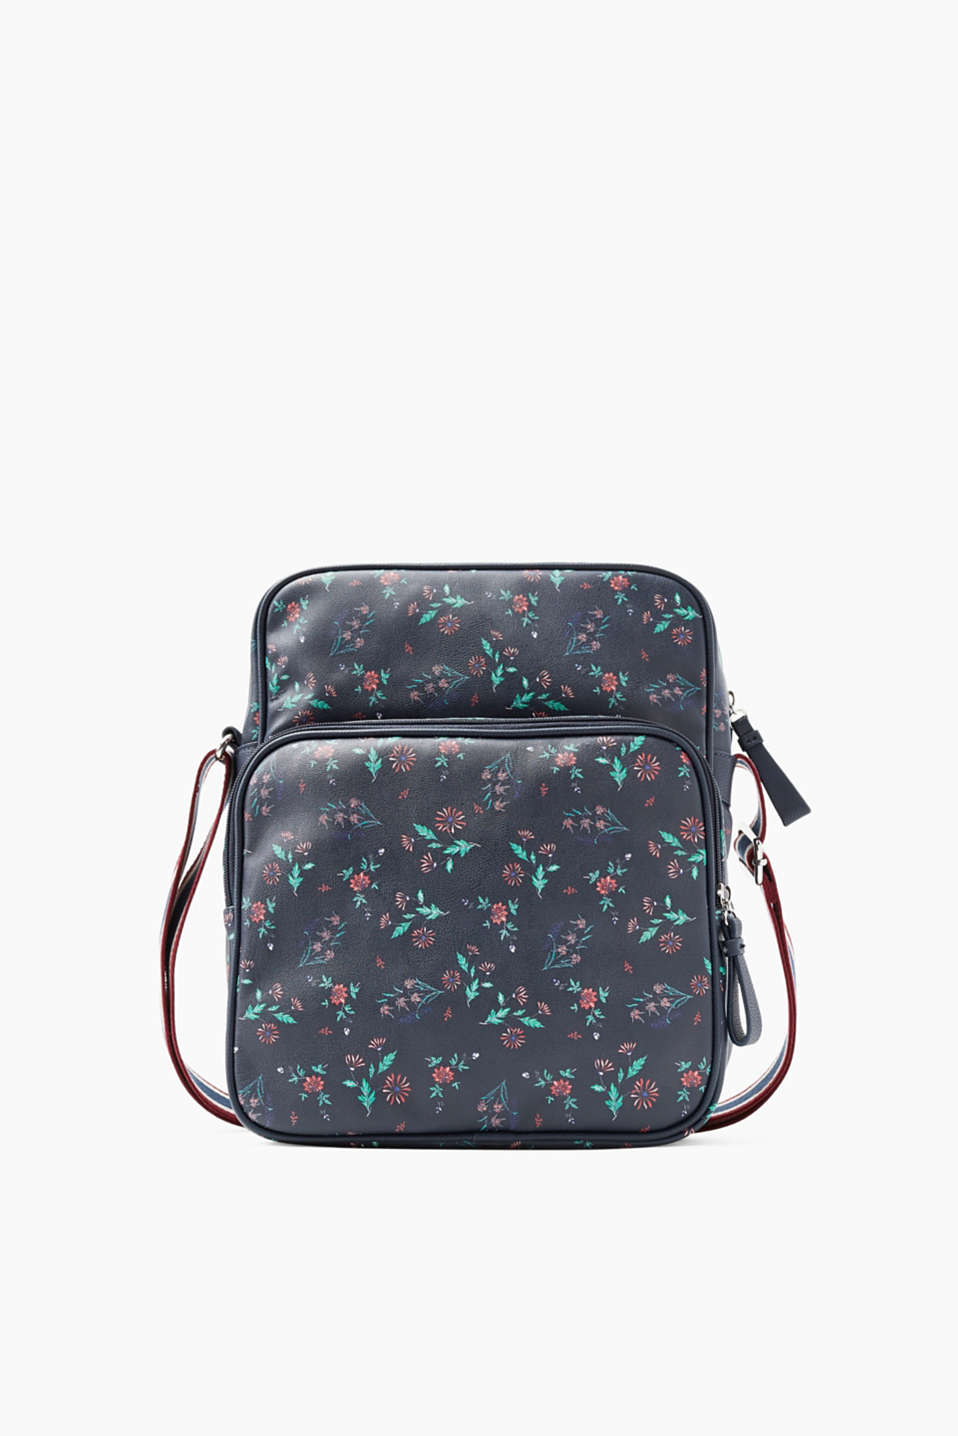 We love flowers! The fine, scattered flower print makes this stylish shoulder bag a heavenly highlight.